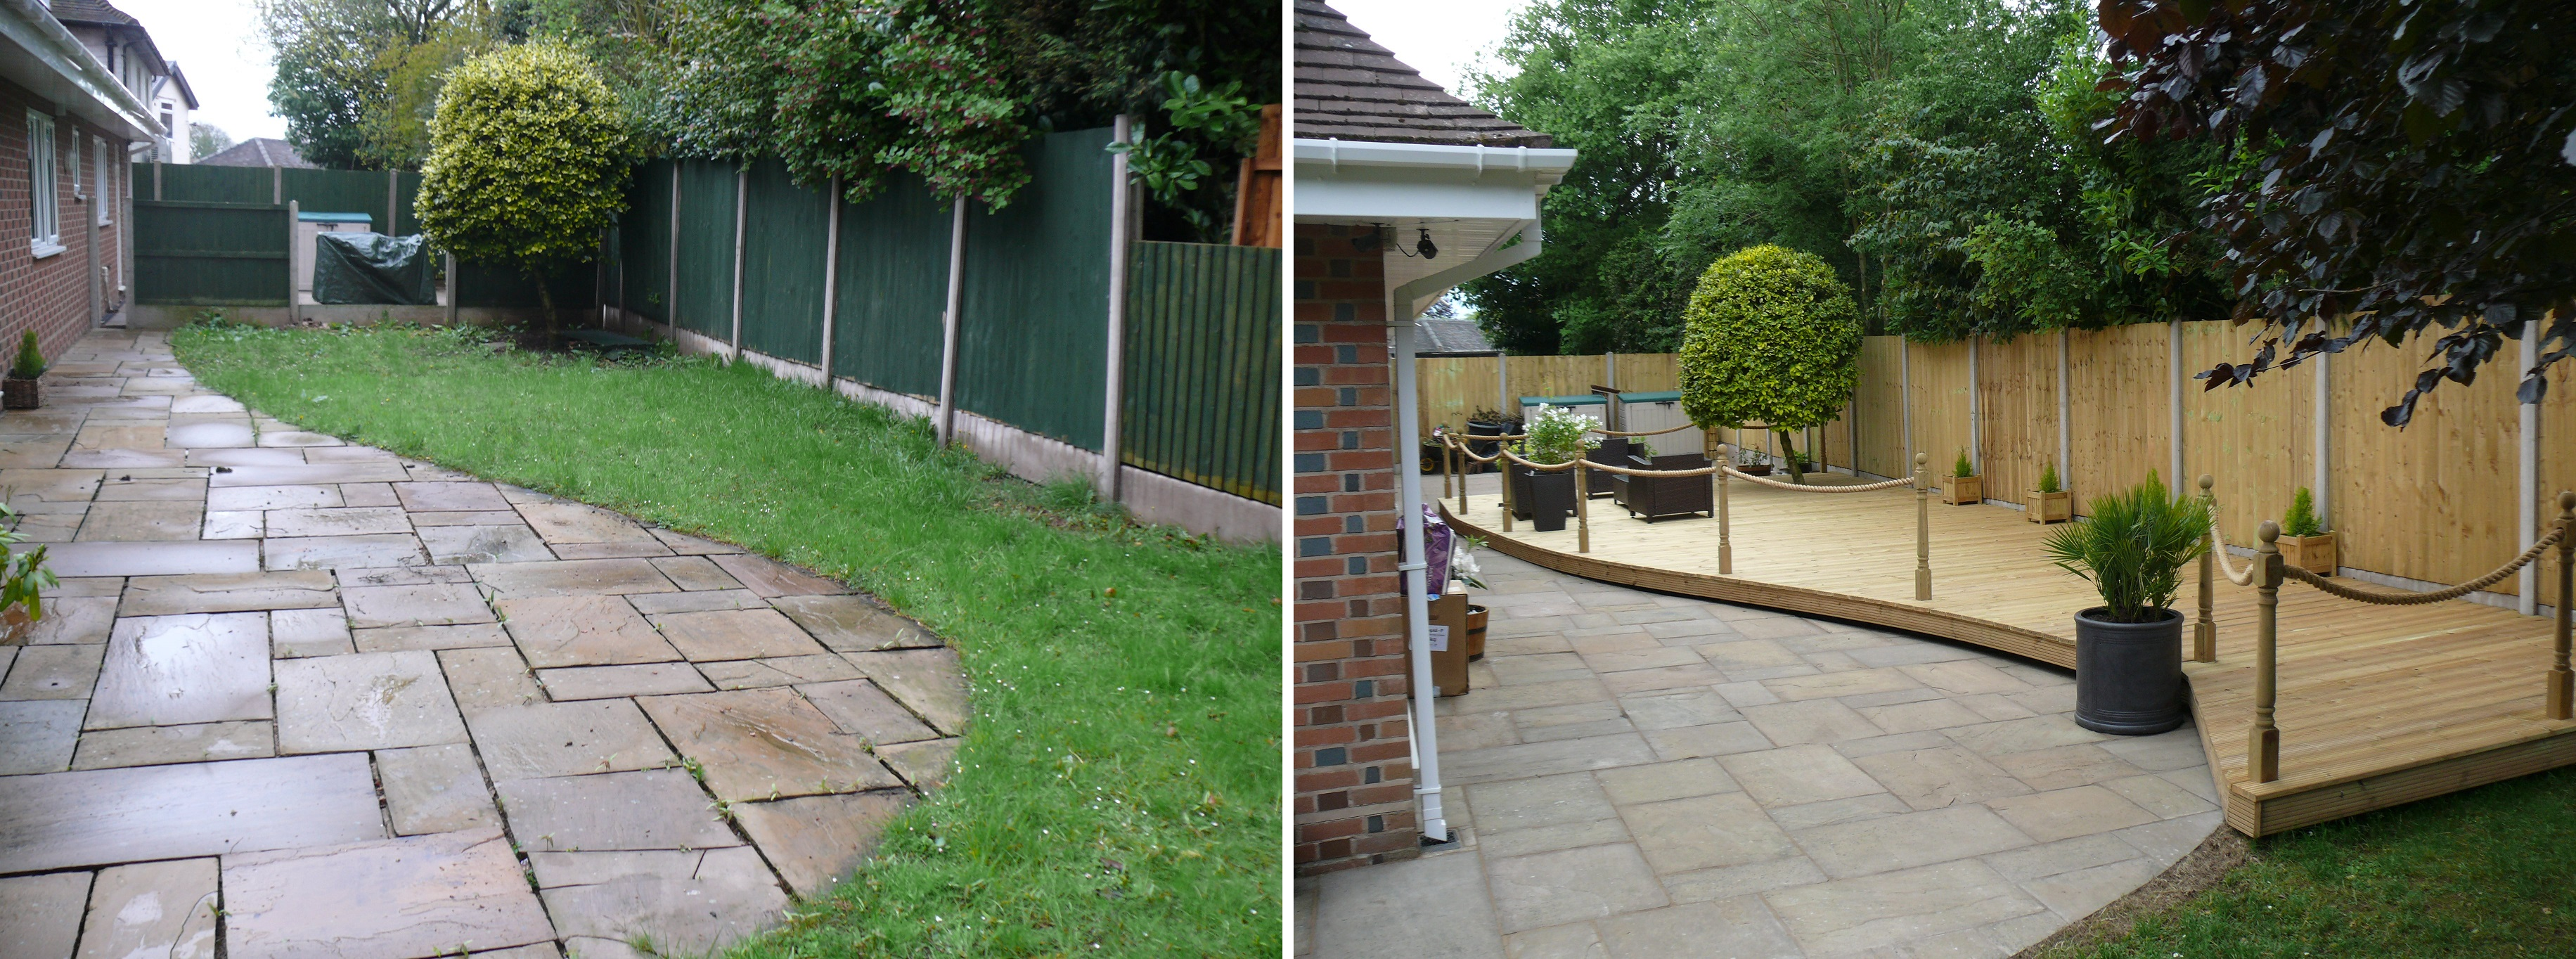 Landscaping in Mottram St Andrew - Before and After